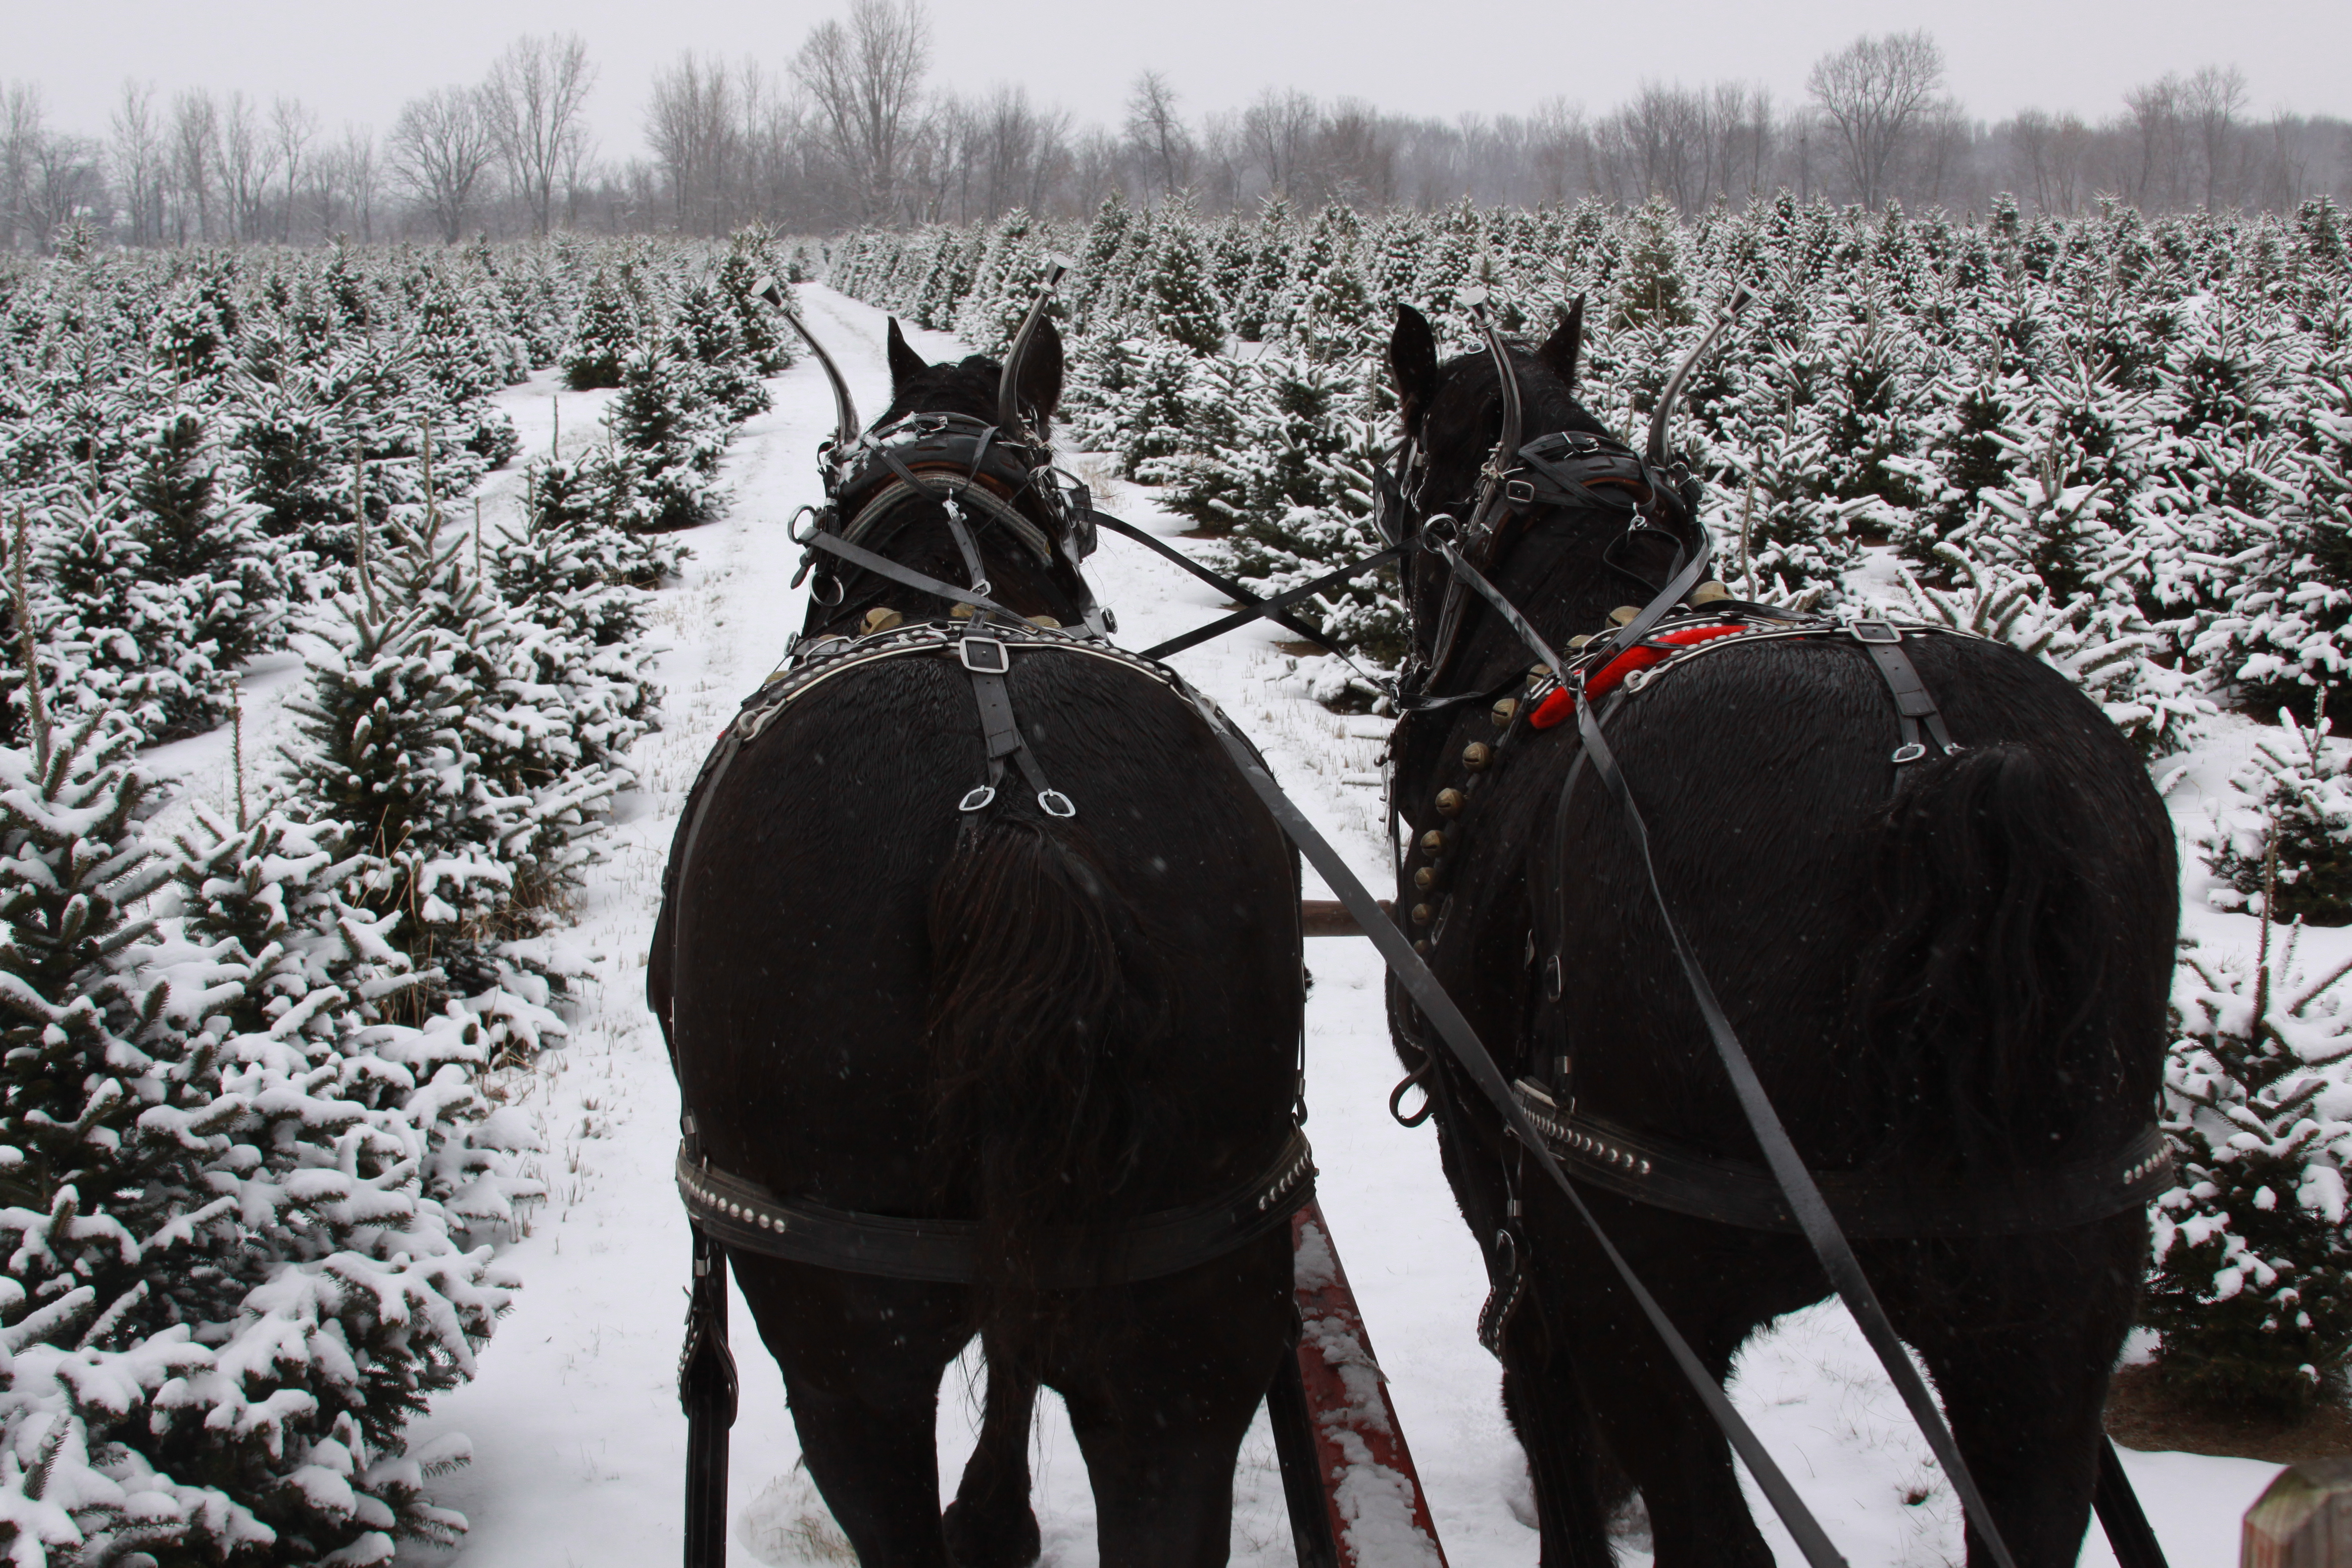 Sleigh ride in the trees